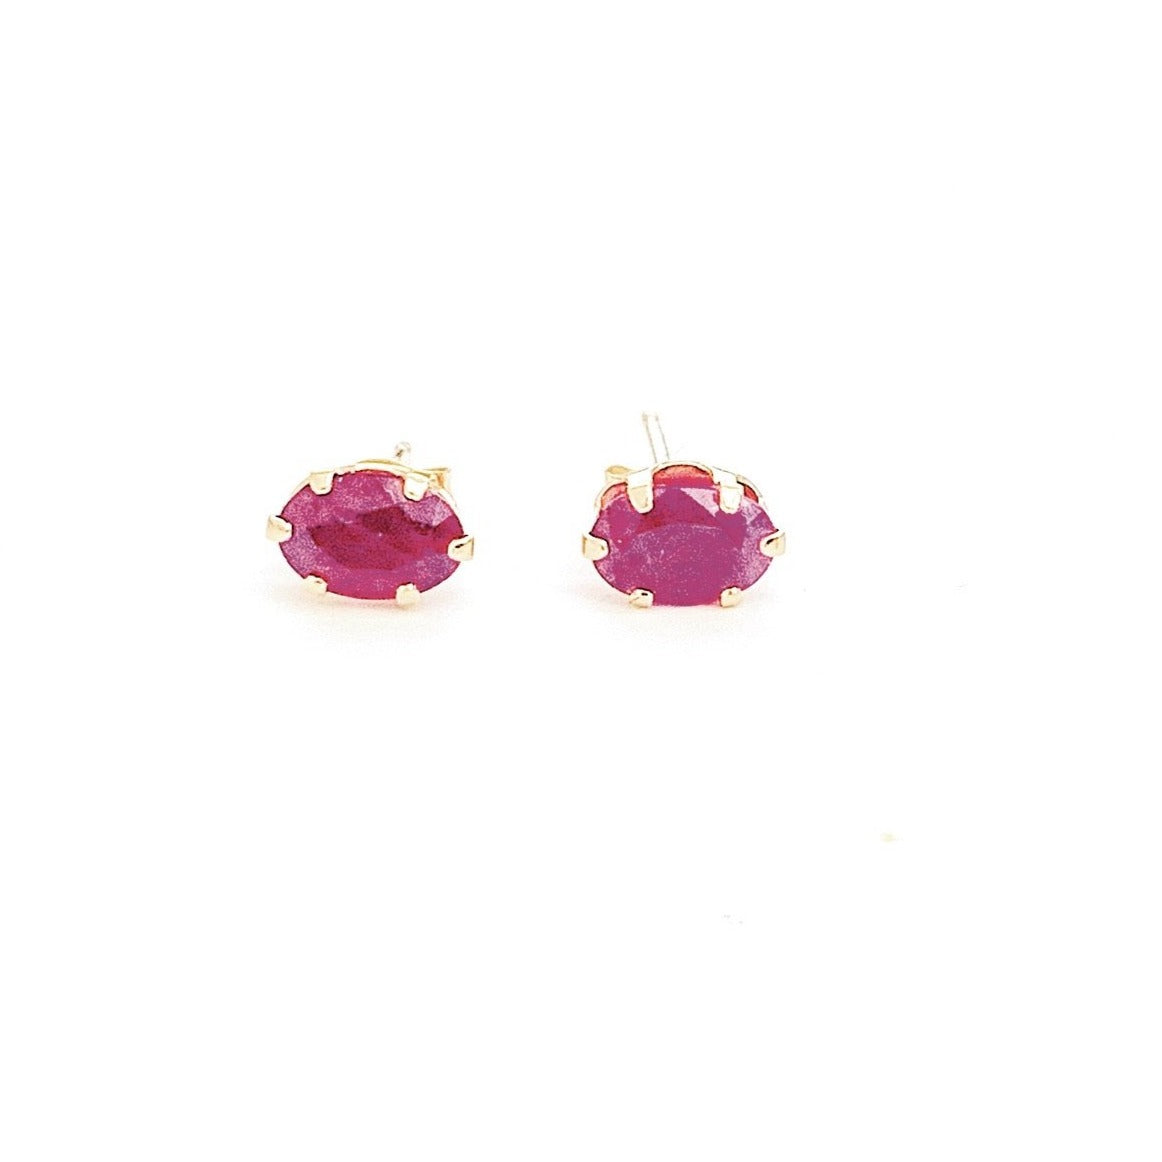 10ct Gold & Ruby Earrings